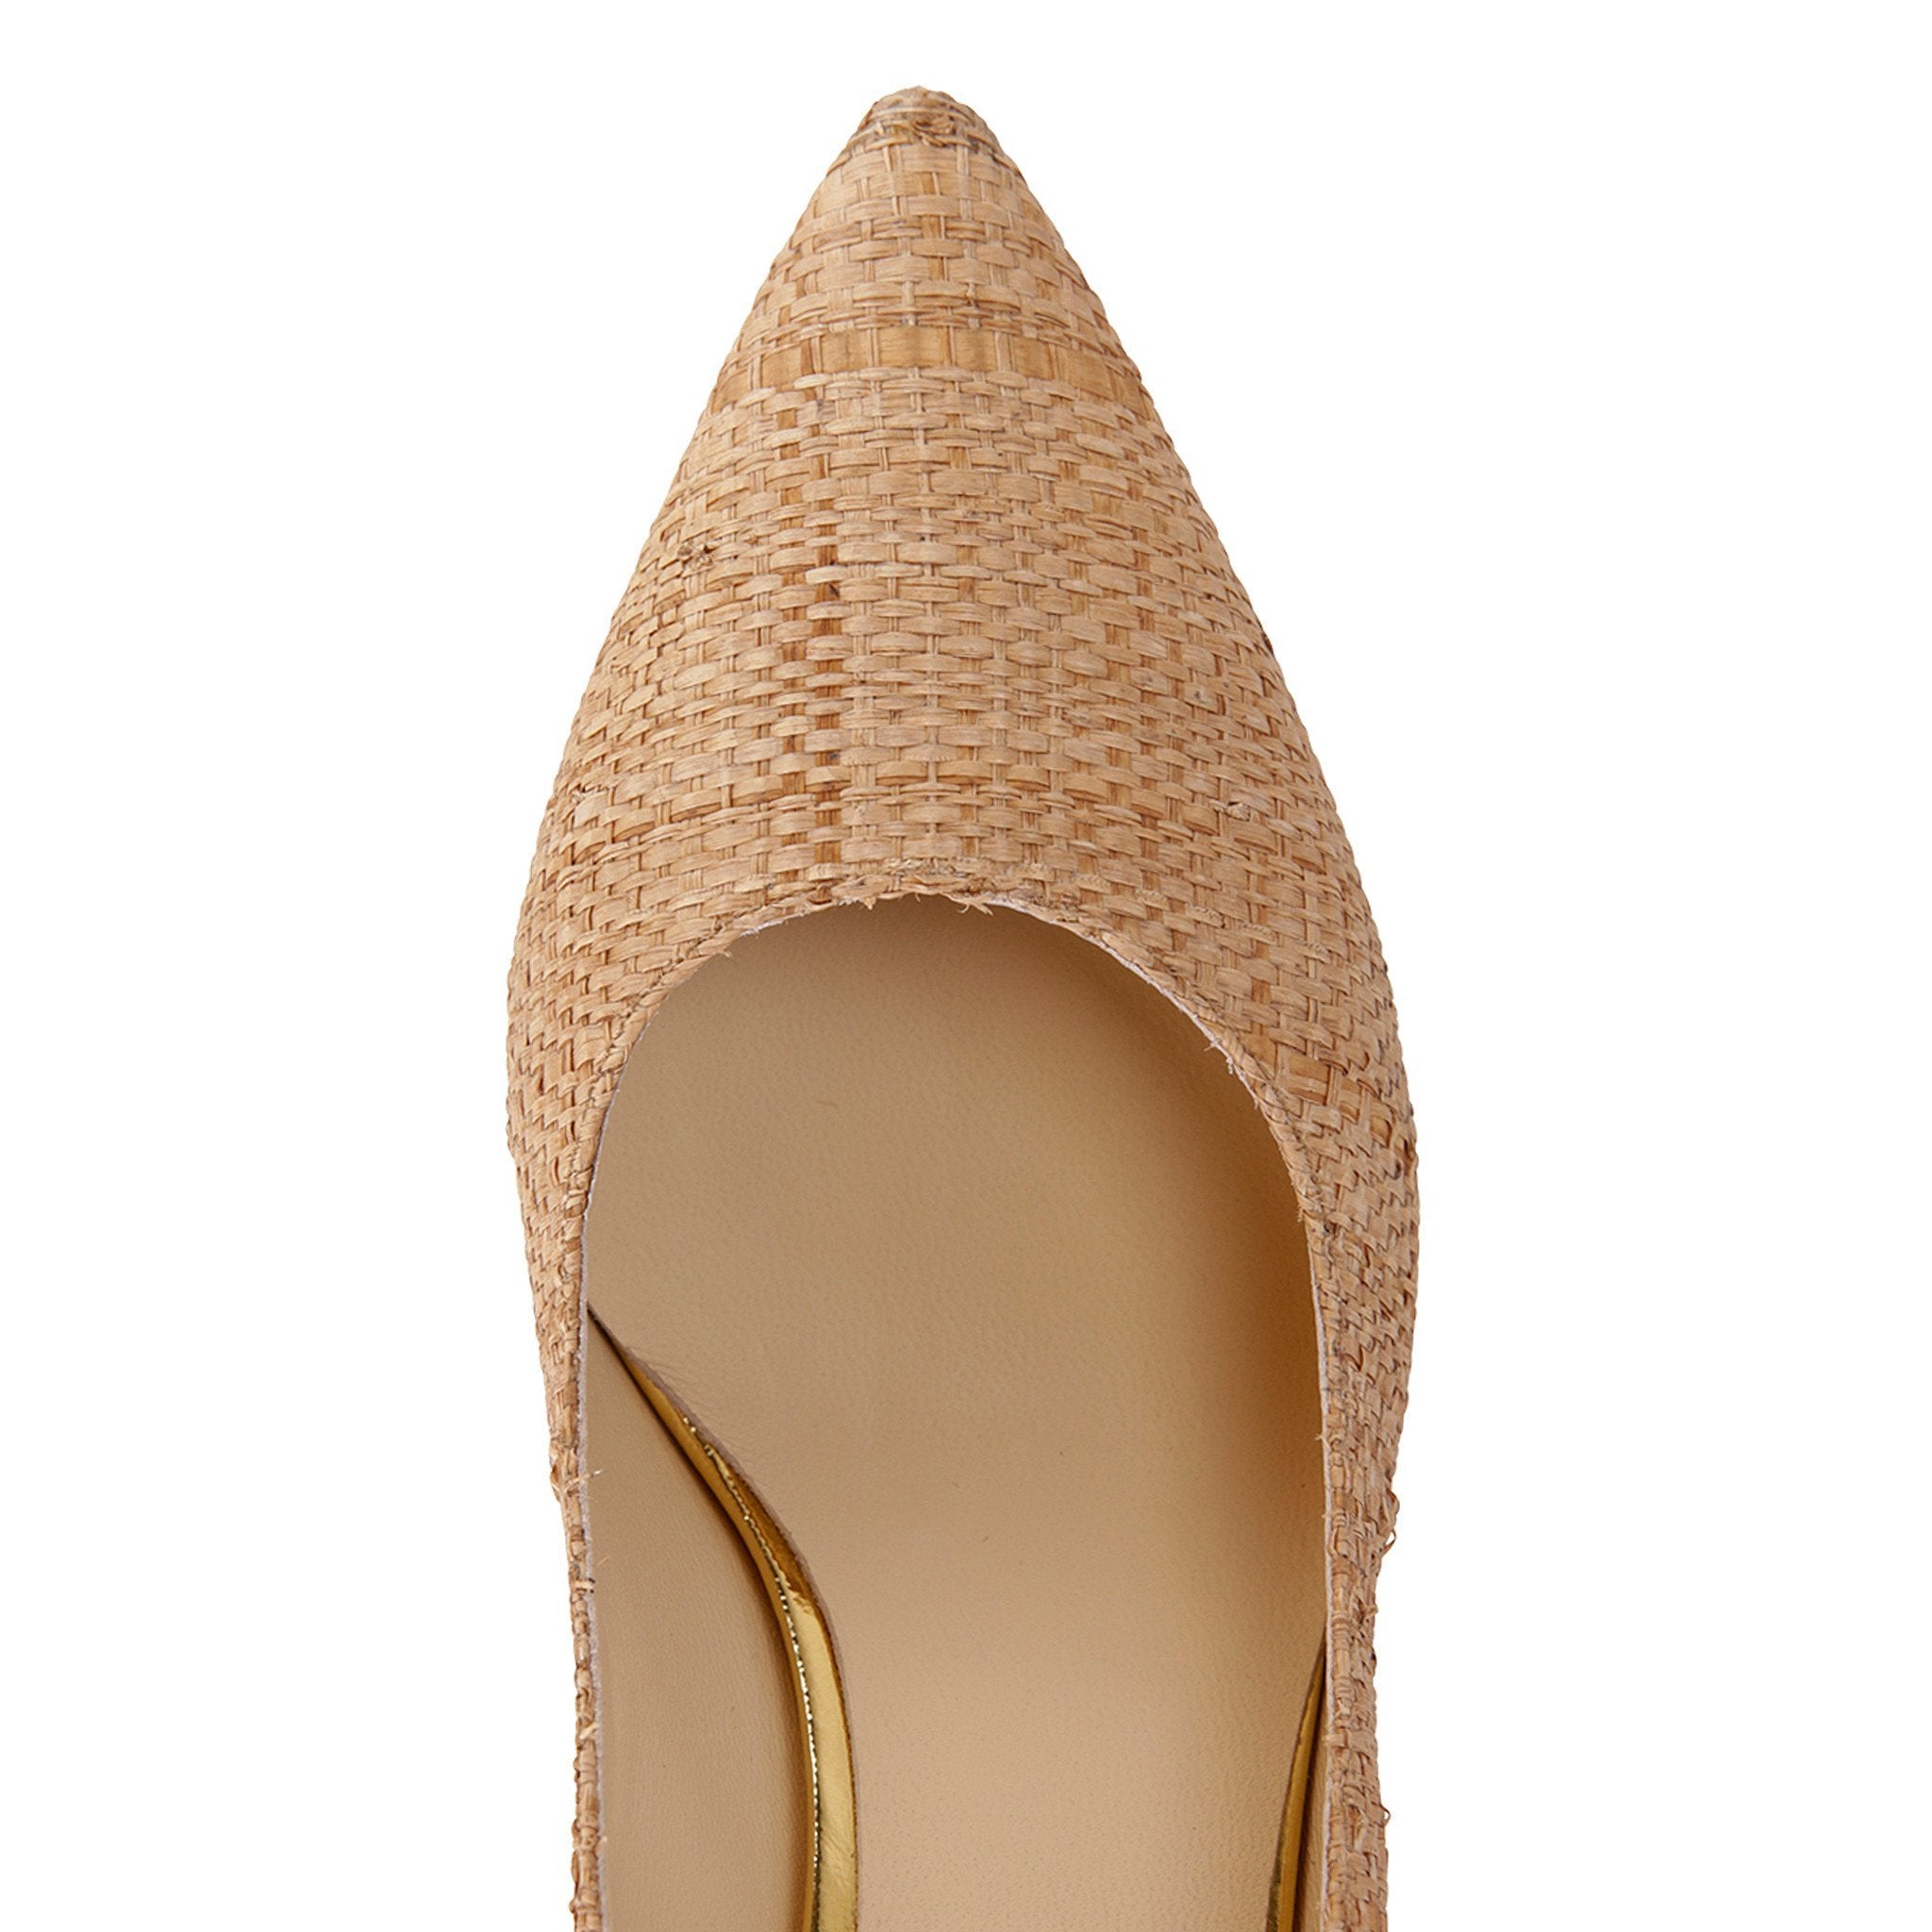 TRENTO - Raffia Natural + Metallic Gold, VIAJIYU - Women's Hand Made Sustainable Luxury Shoes. Made in Italy. Made to Order.